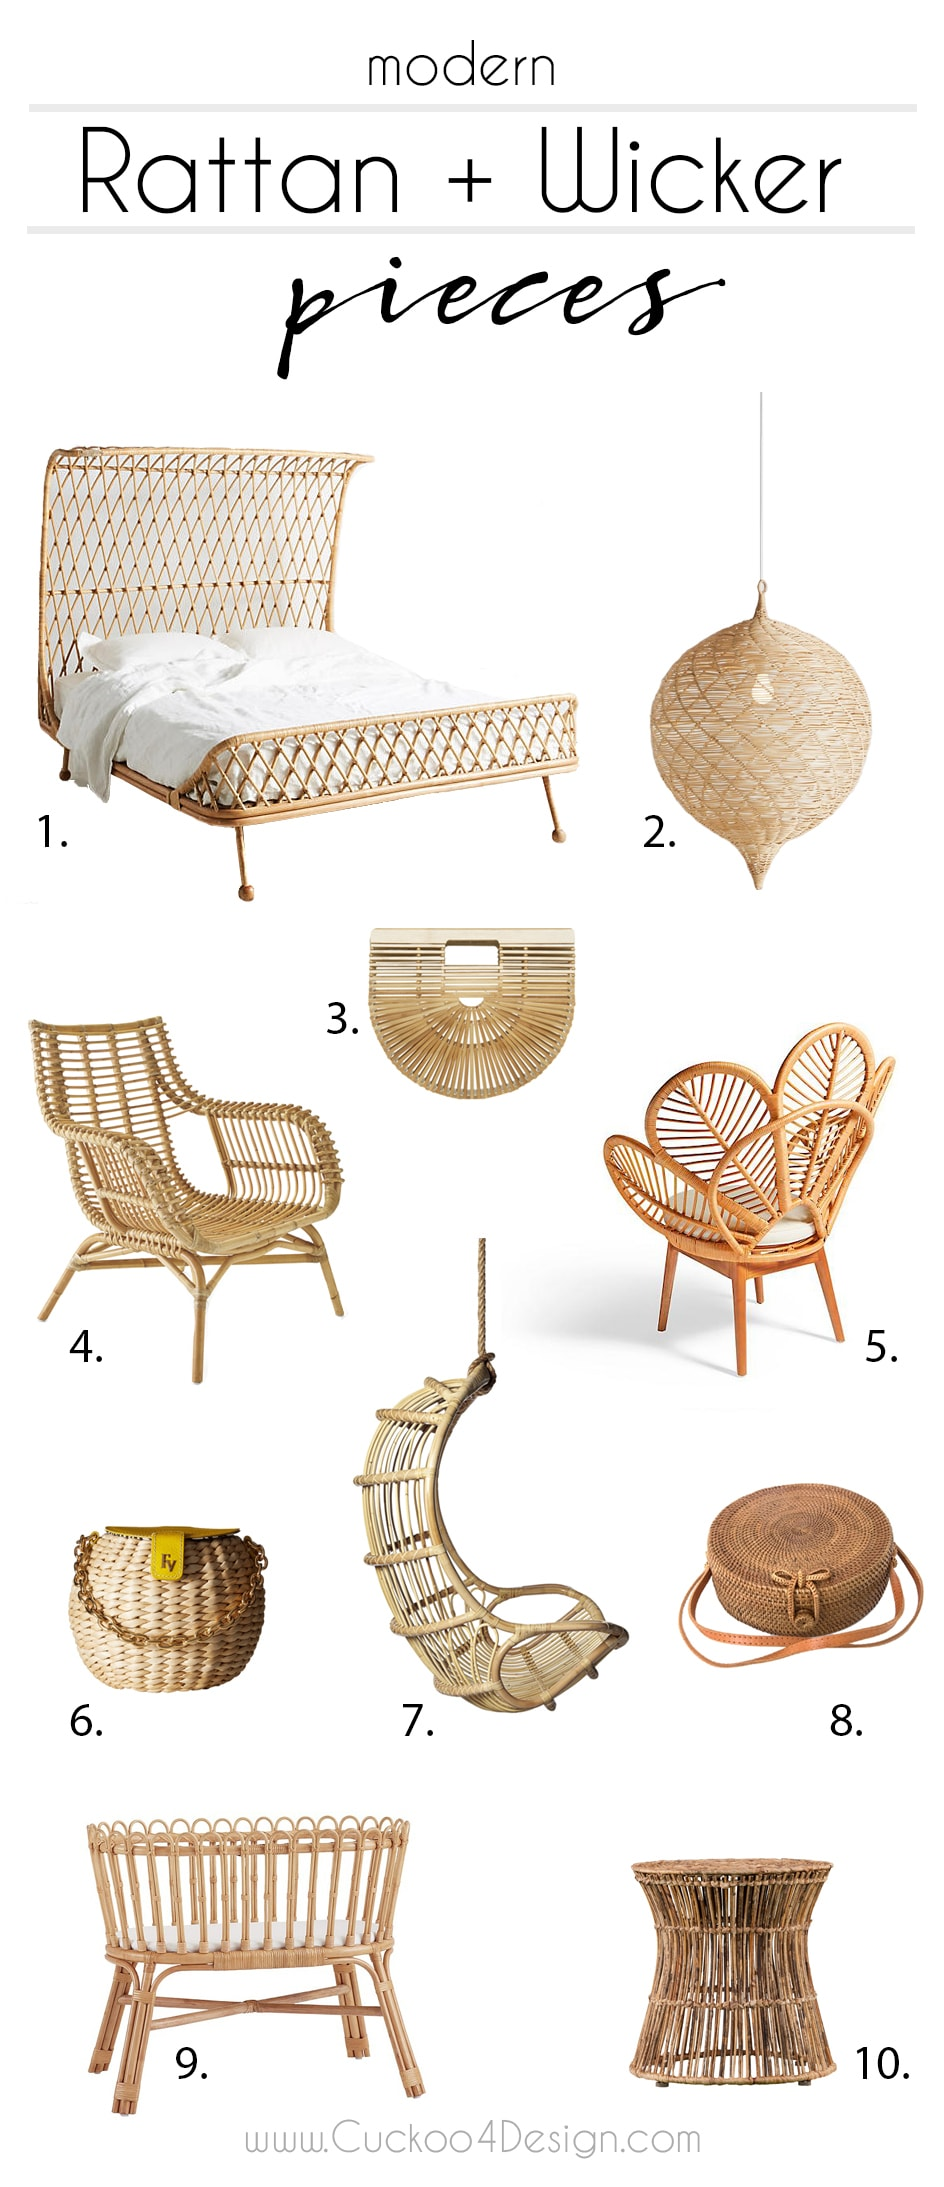 my favorite modern and current rattan pieces: rattan bed, rattan crib, rattan purse, rattan chair, peacock rattan chair, rattan end table, rattan globe pendant